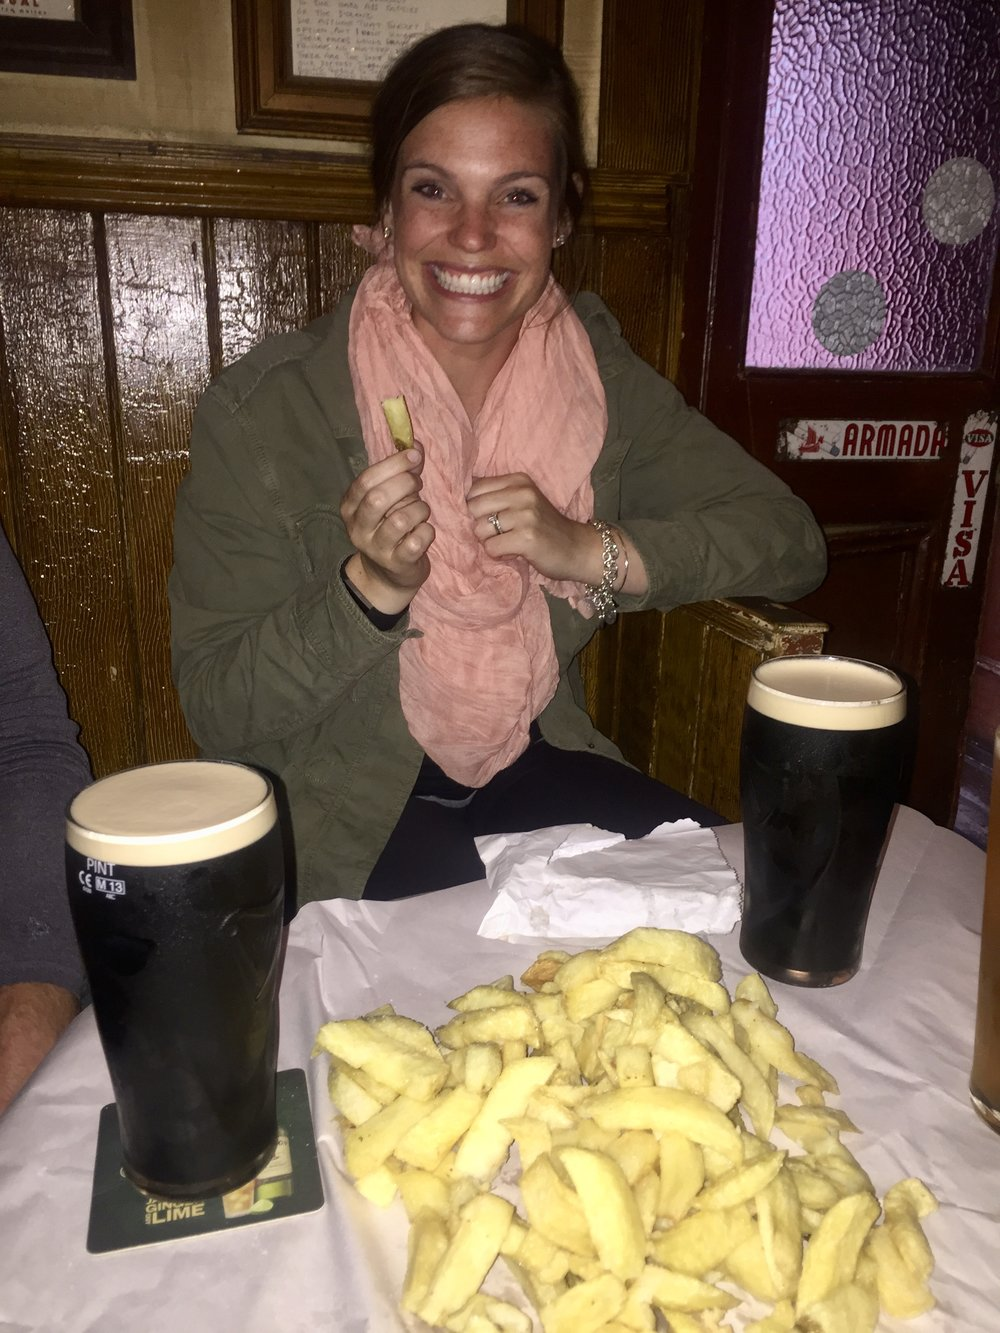 Pints & chips make us happy!